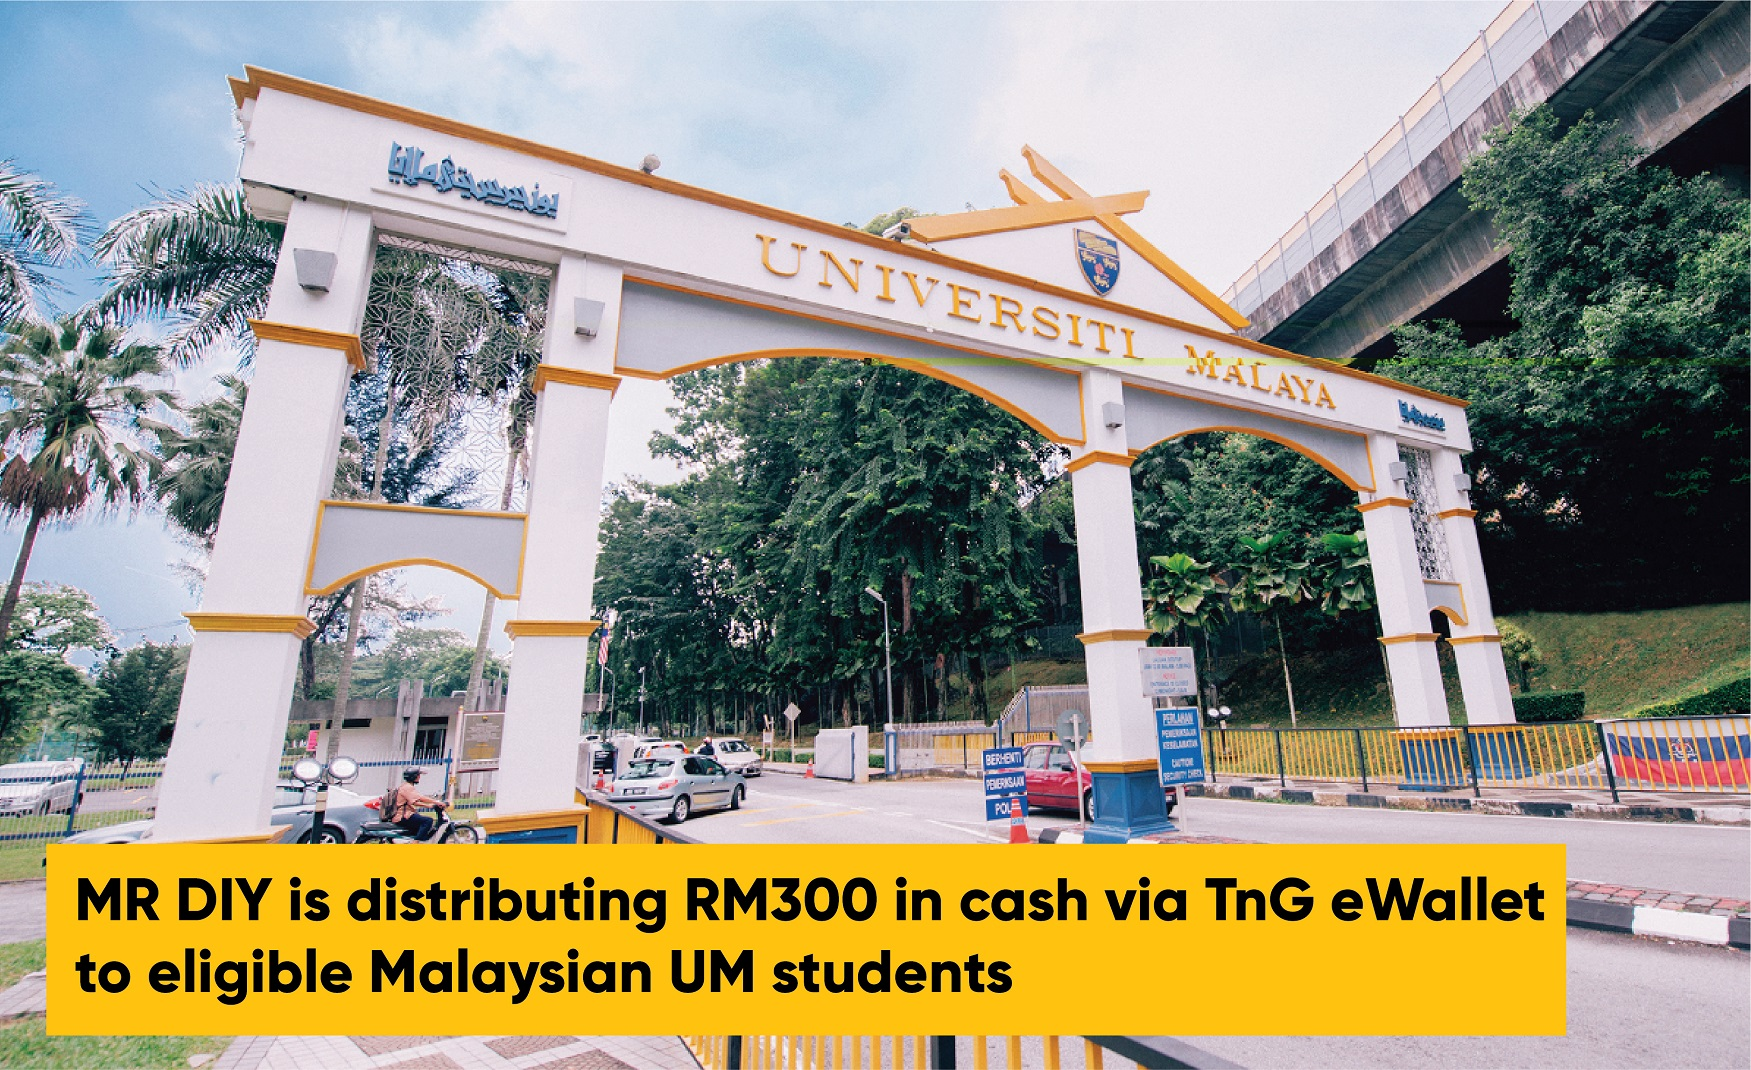 MR D.I.Y. distributes RM300 in cash via Touch 'n Go eWallet to 15,000 UM students